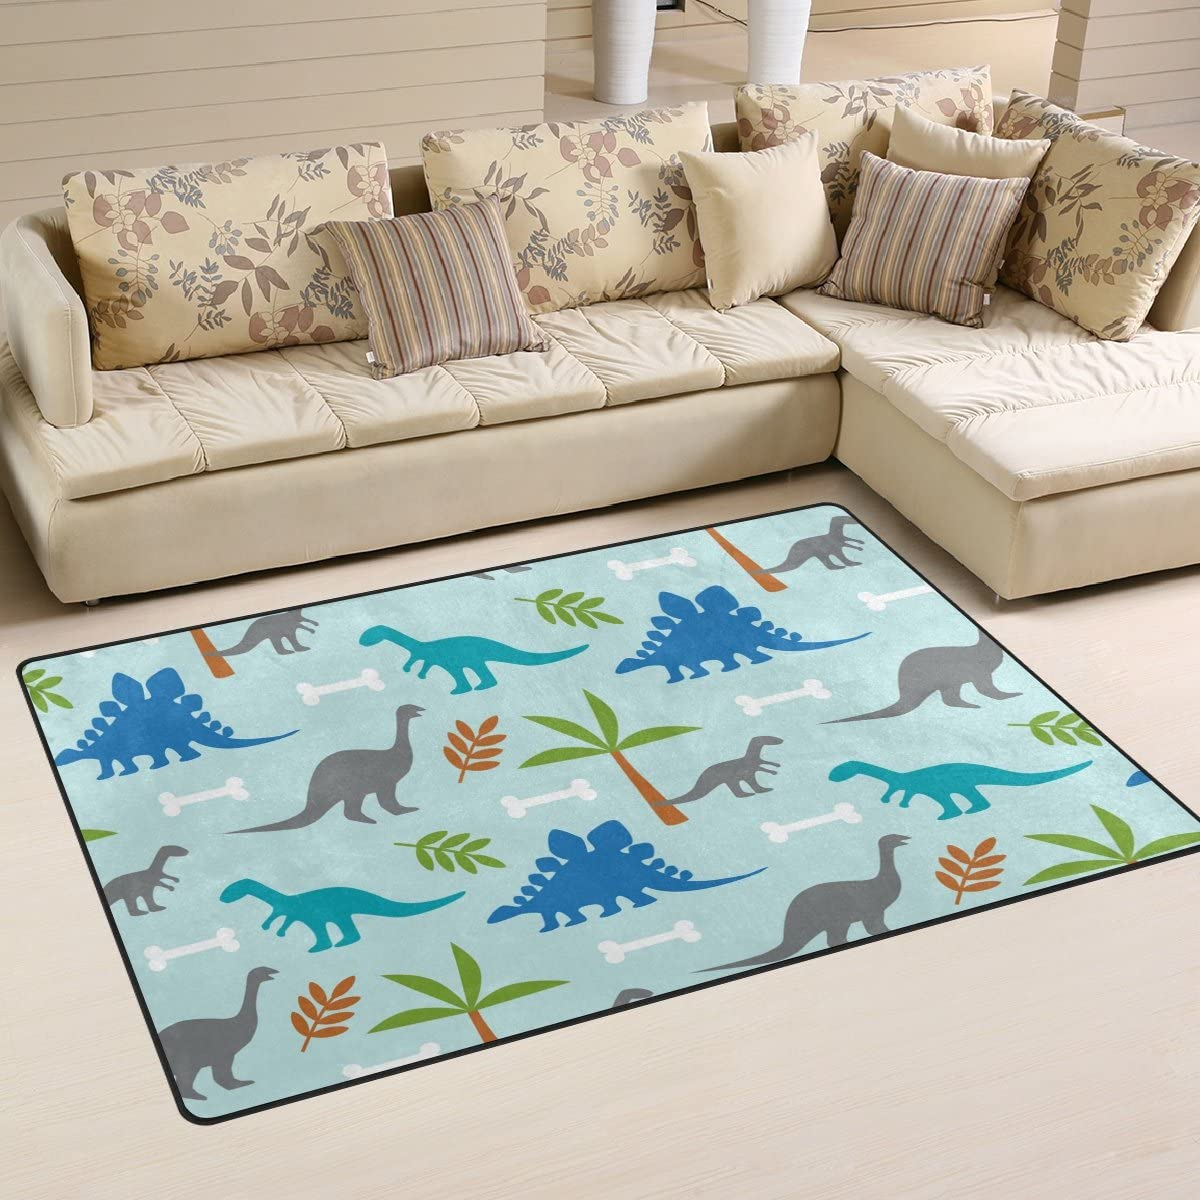 Sunlome Cute Dinosaur Dino Area Rug Rugs Non-Slip Indoor Outdoor Floor Mat Doormats for Home Decor 60 x 39 inches